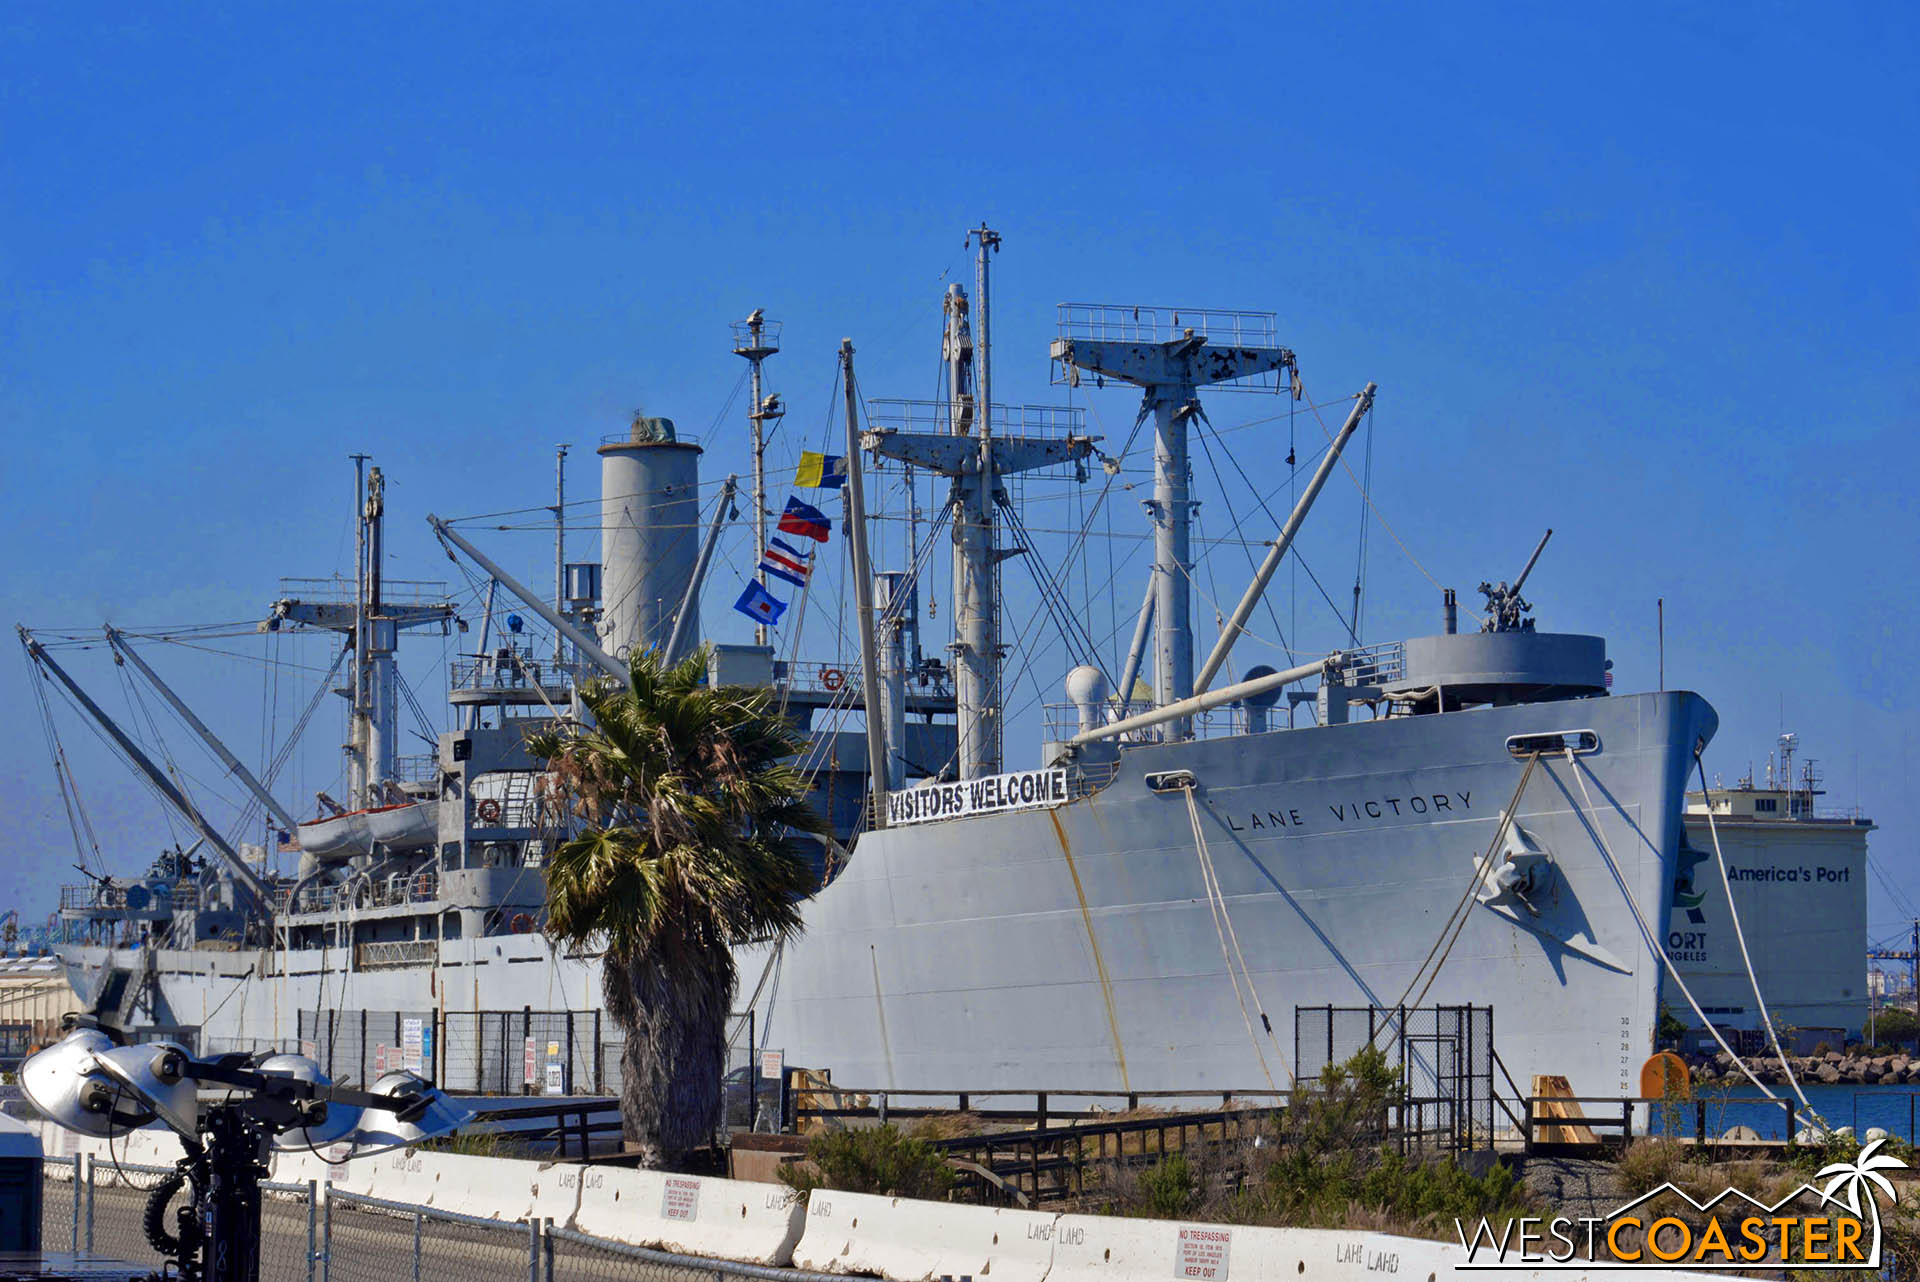 The L.A. Waterfront will feature a collection of naval ships this Labor Day weeekend with the return of Fleet Week!